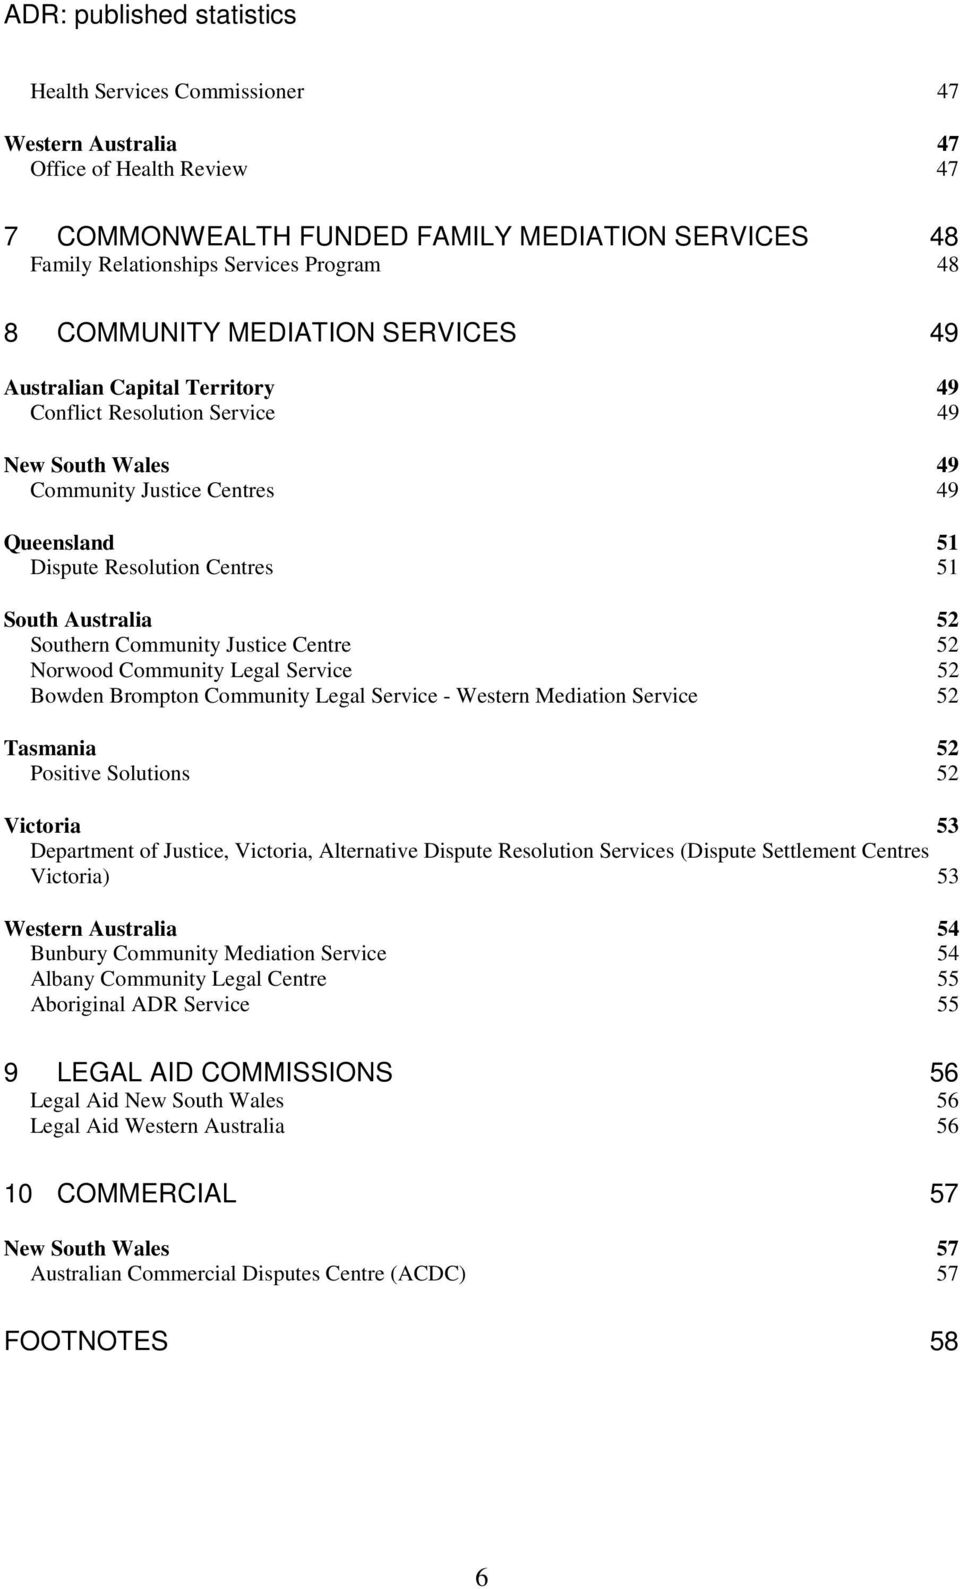 Australia 52 Southern Community Justice Centre 52 Norwood Community Legal Service 52 Bowden Brompton Community Legal Service - Western Mediation Service 52 Tasmania 52 Positive Solutions 52 Victoria